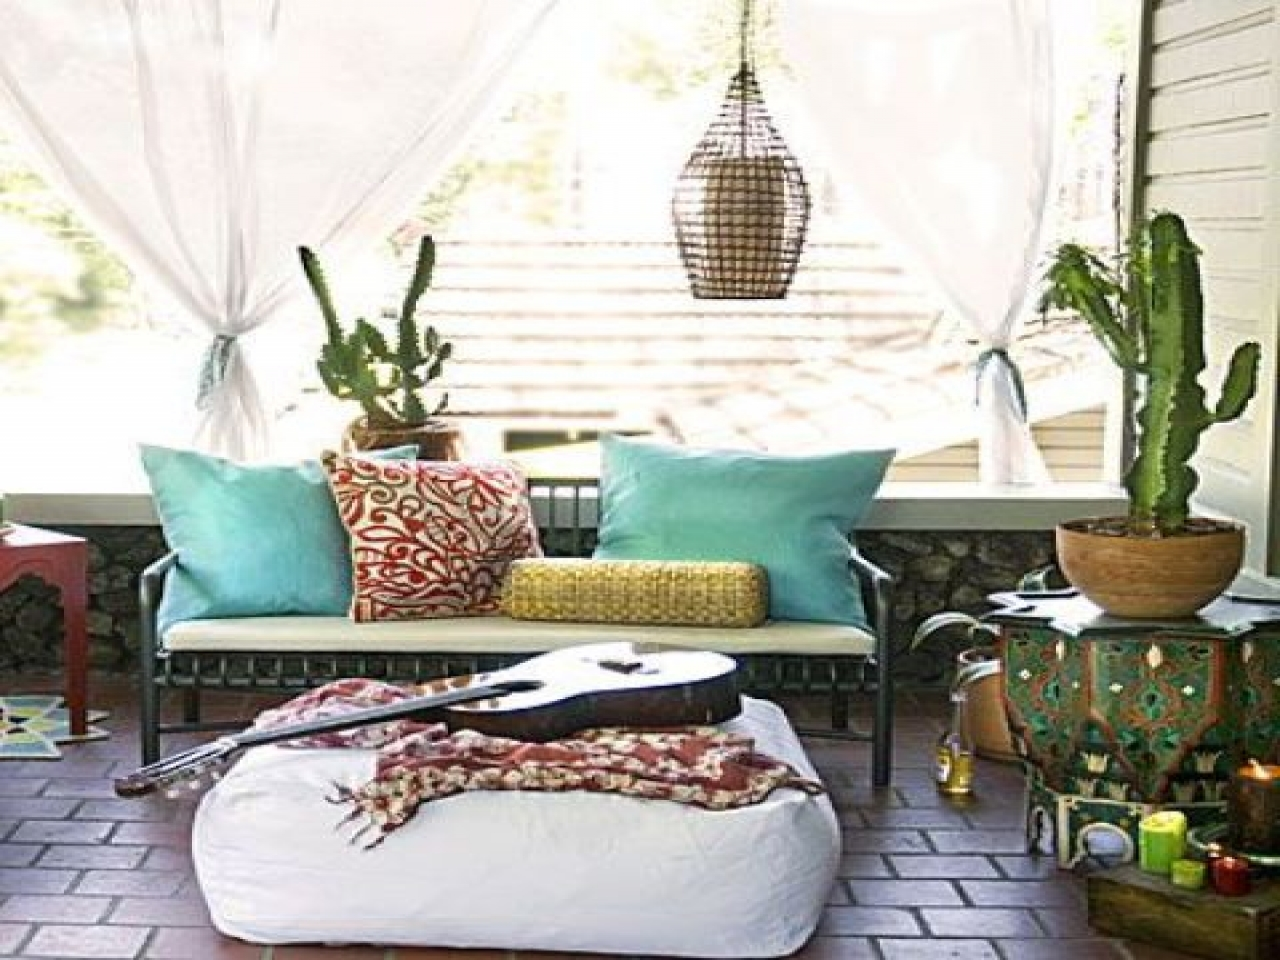 Hipster Patio7 Seriously Stunning Outdoor Boho Areas. Diy Boho Chic Home Decor. Home Design Ideas